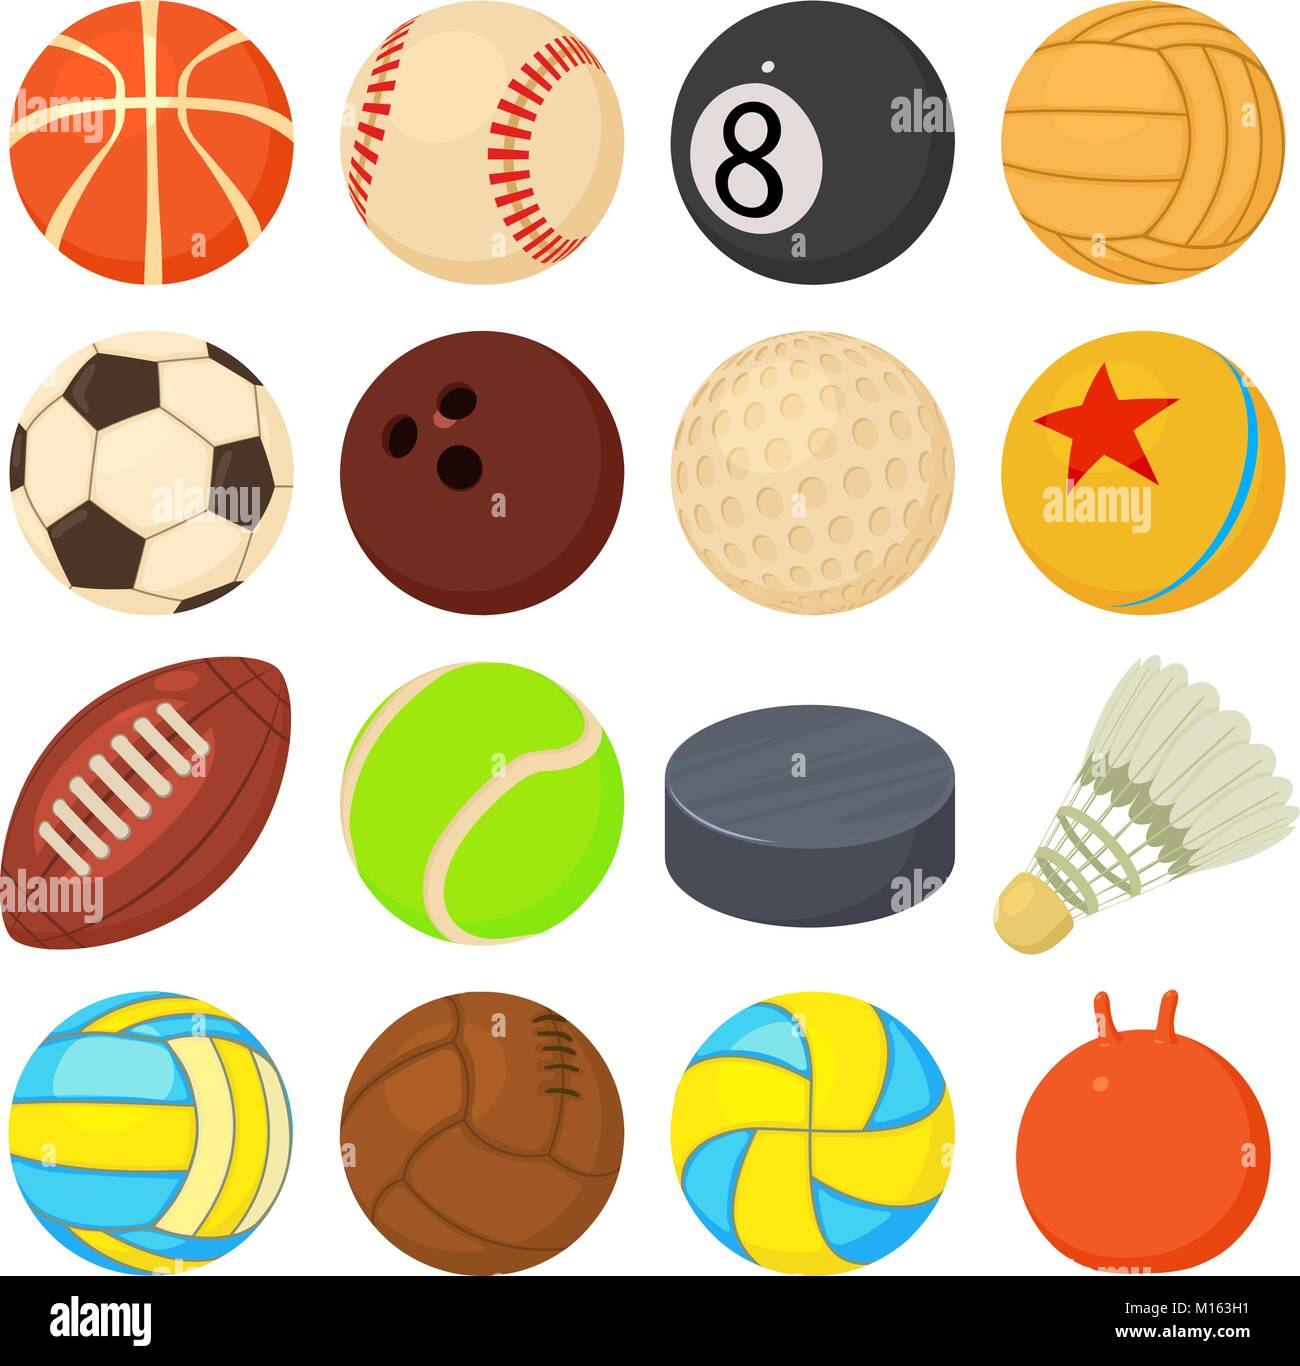 Sport Balls Icons Set Play Types Cartoon Style Stock Vector Image Art Alamy